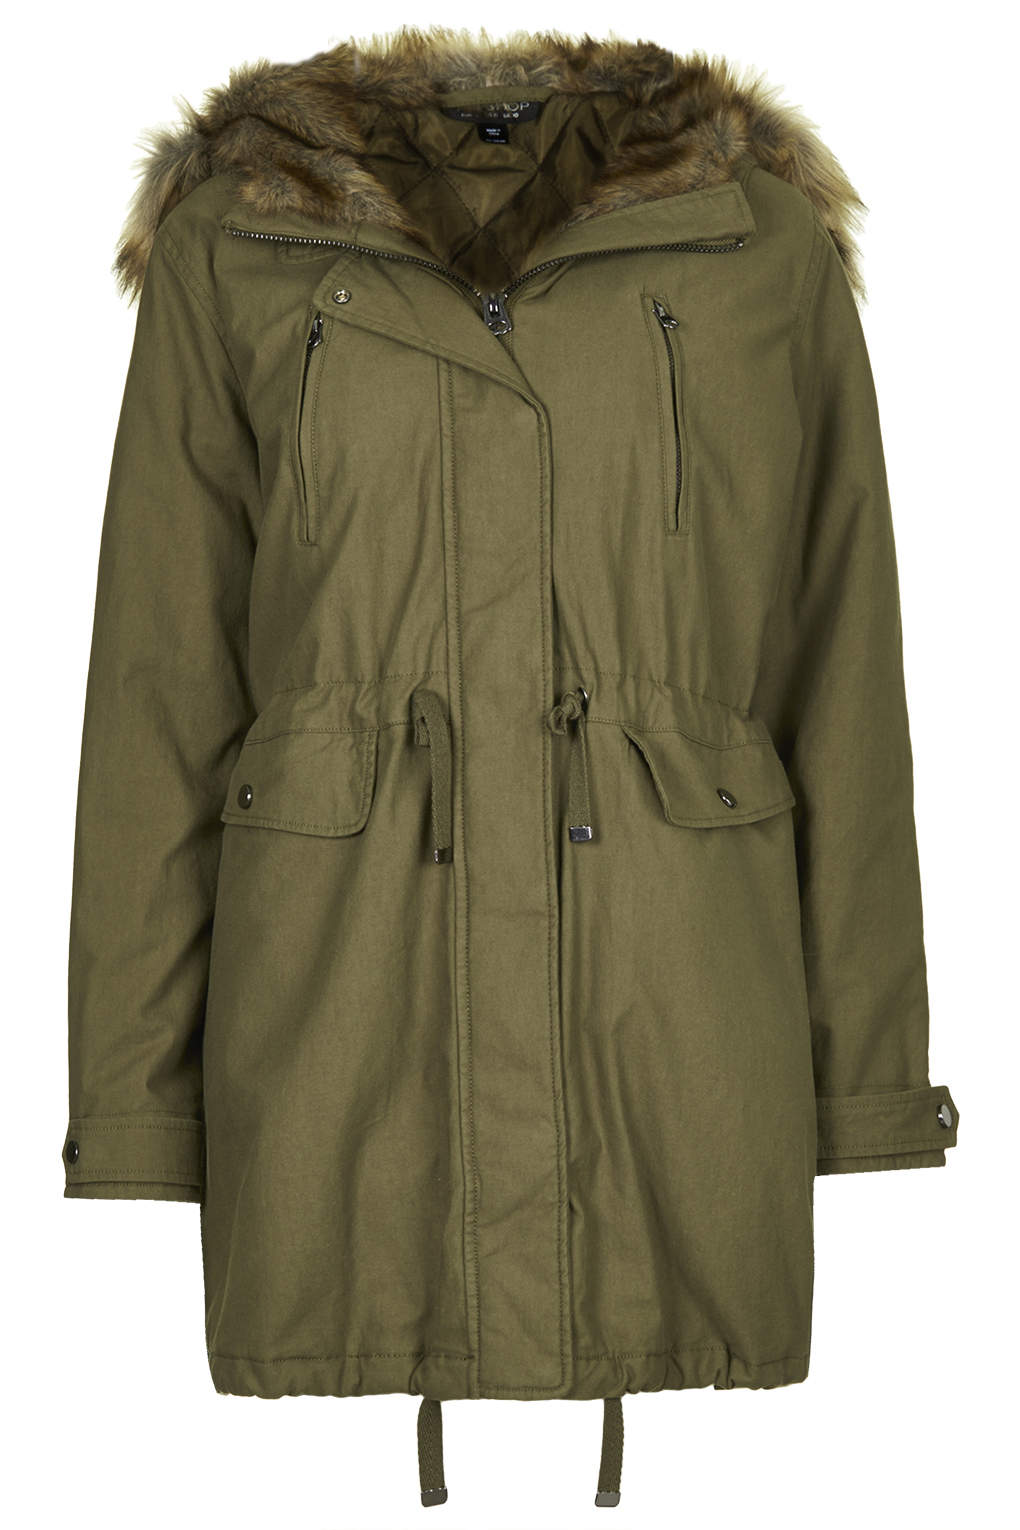 http://www.topshop.com/en/tsuk/product/clothing-427/jackets-coats-2390889/faux-fur-trimmed-parka-jacket-3263326?bi=1&ps=200